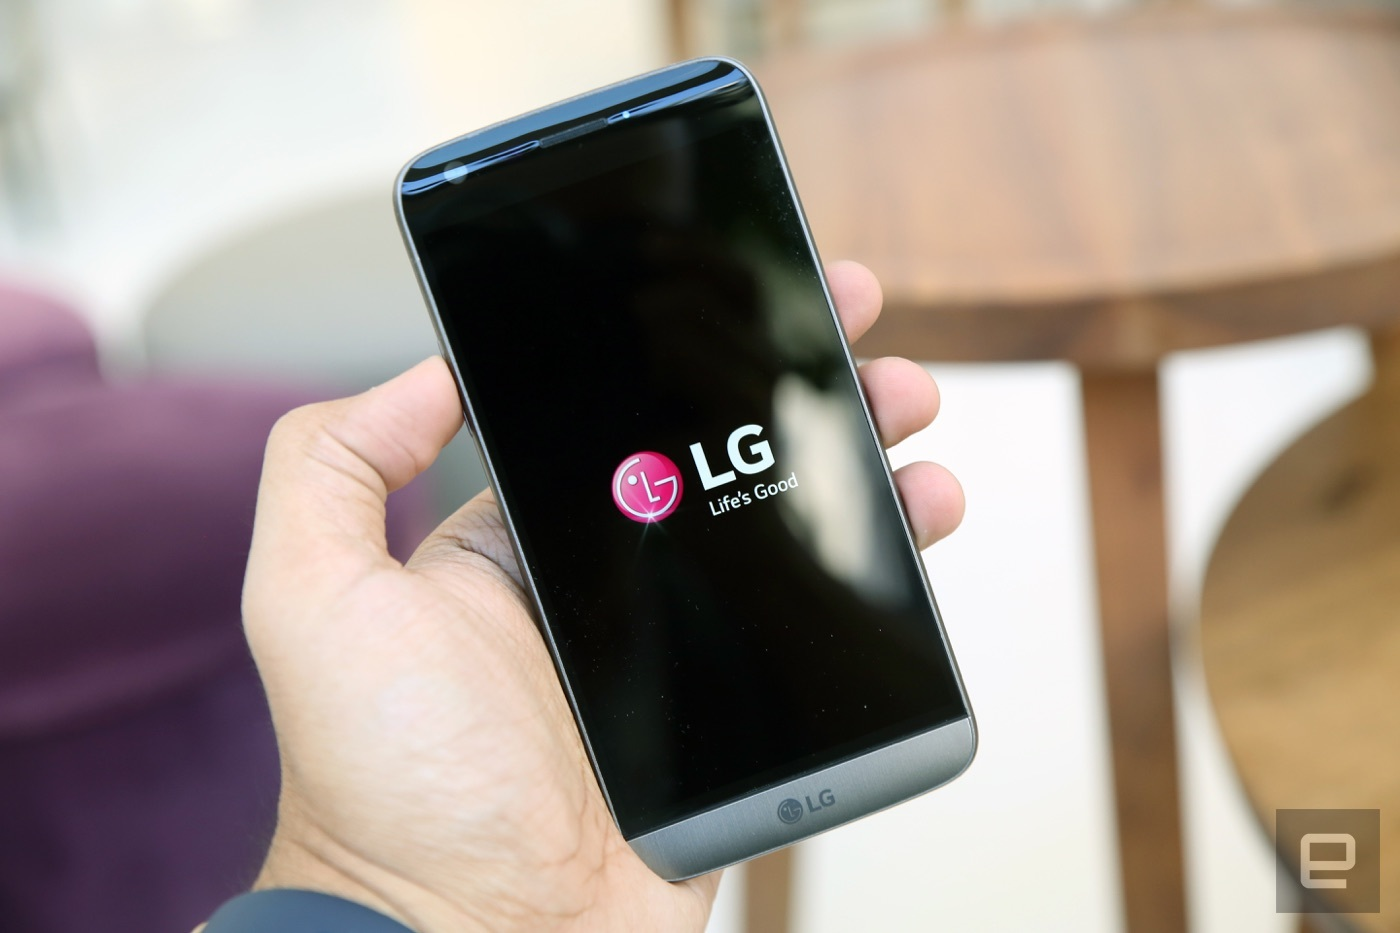 lg g5 oficial mwc 2016 5